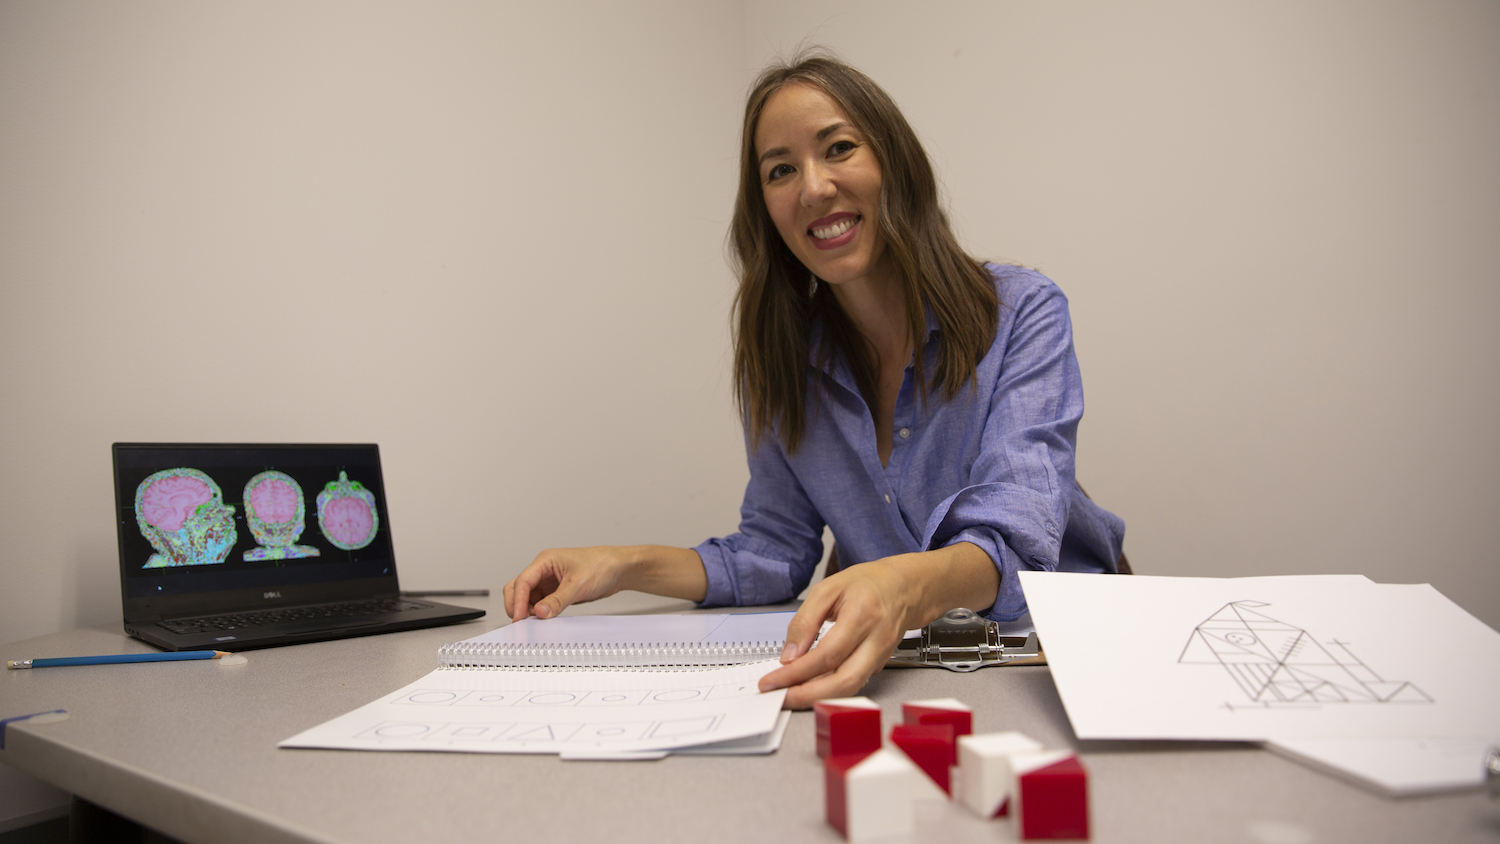 Sydney Schaefer sits at her desk displaying some of the low-cost cognitive tests (papers with drawings) she uses in her research